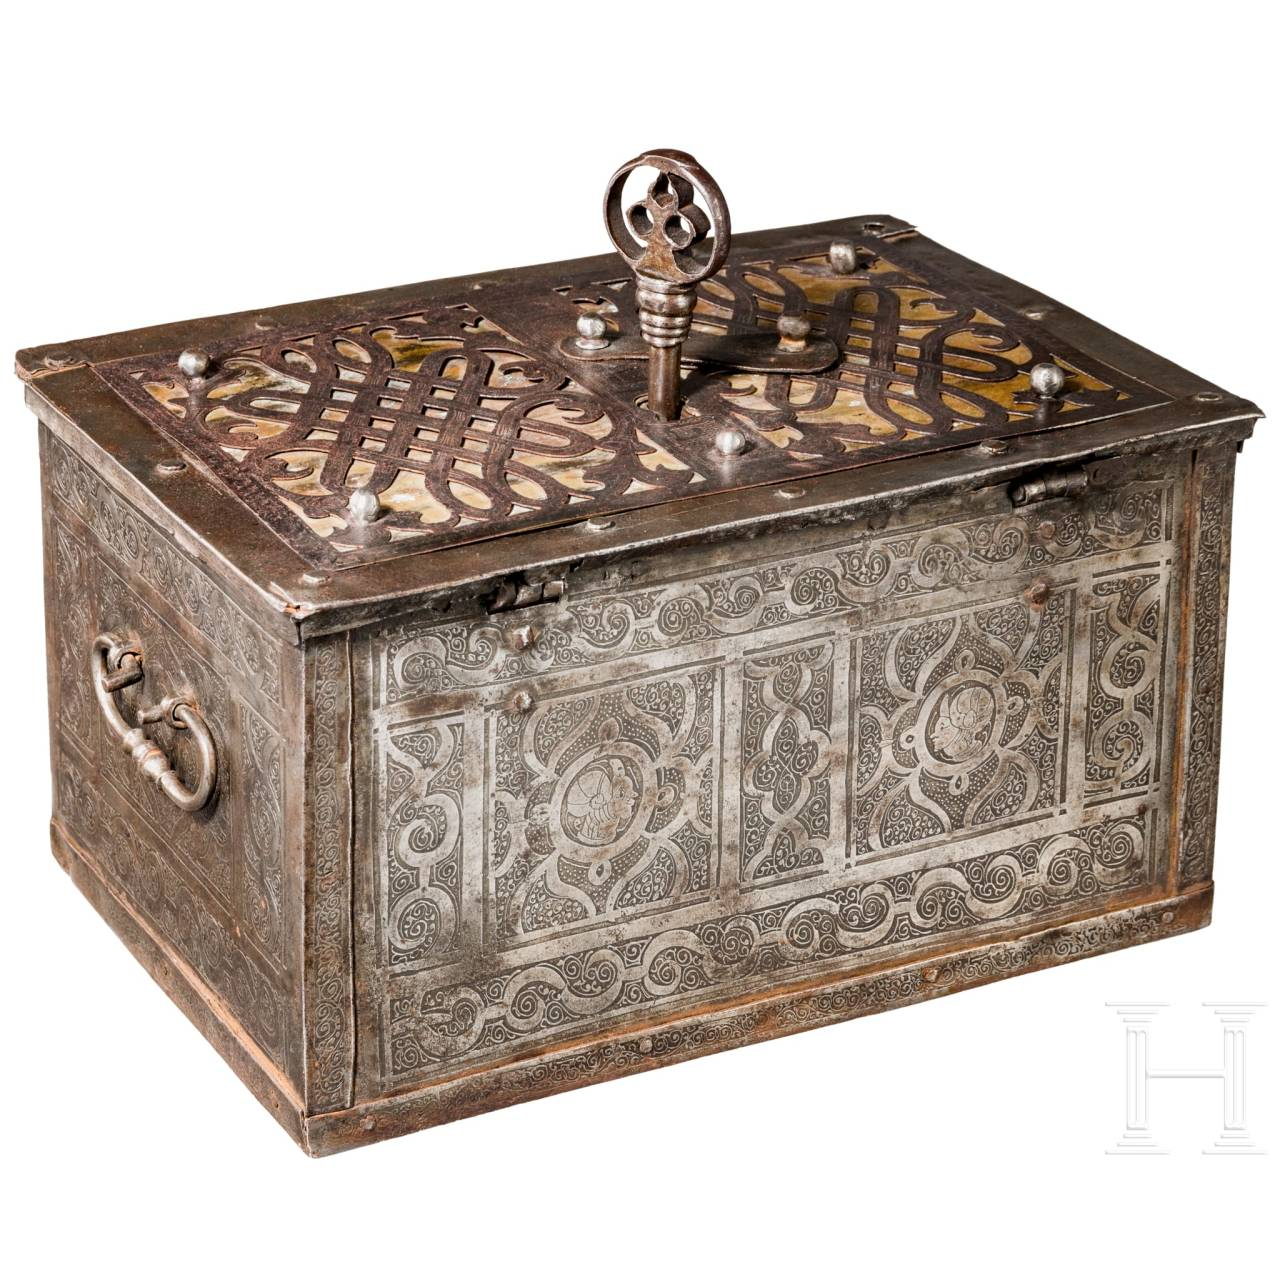 A large Nurembergian iron casket with etched decorations, circa 1570